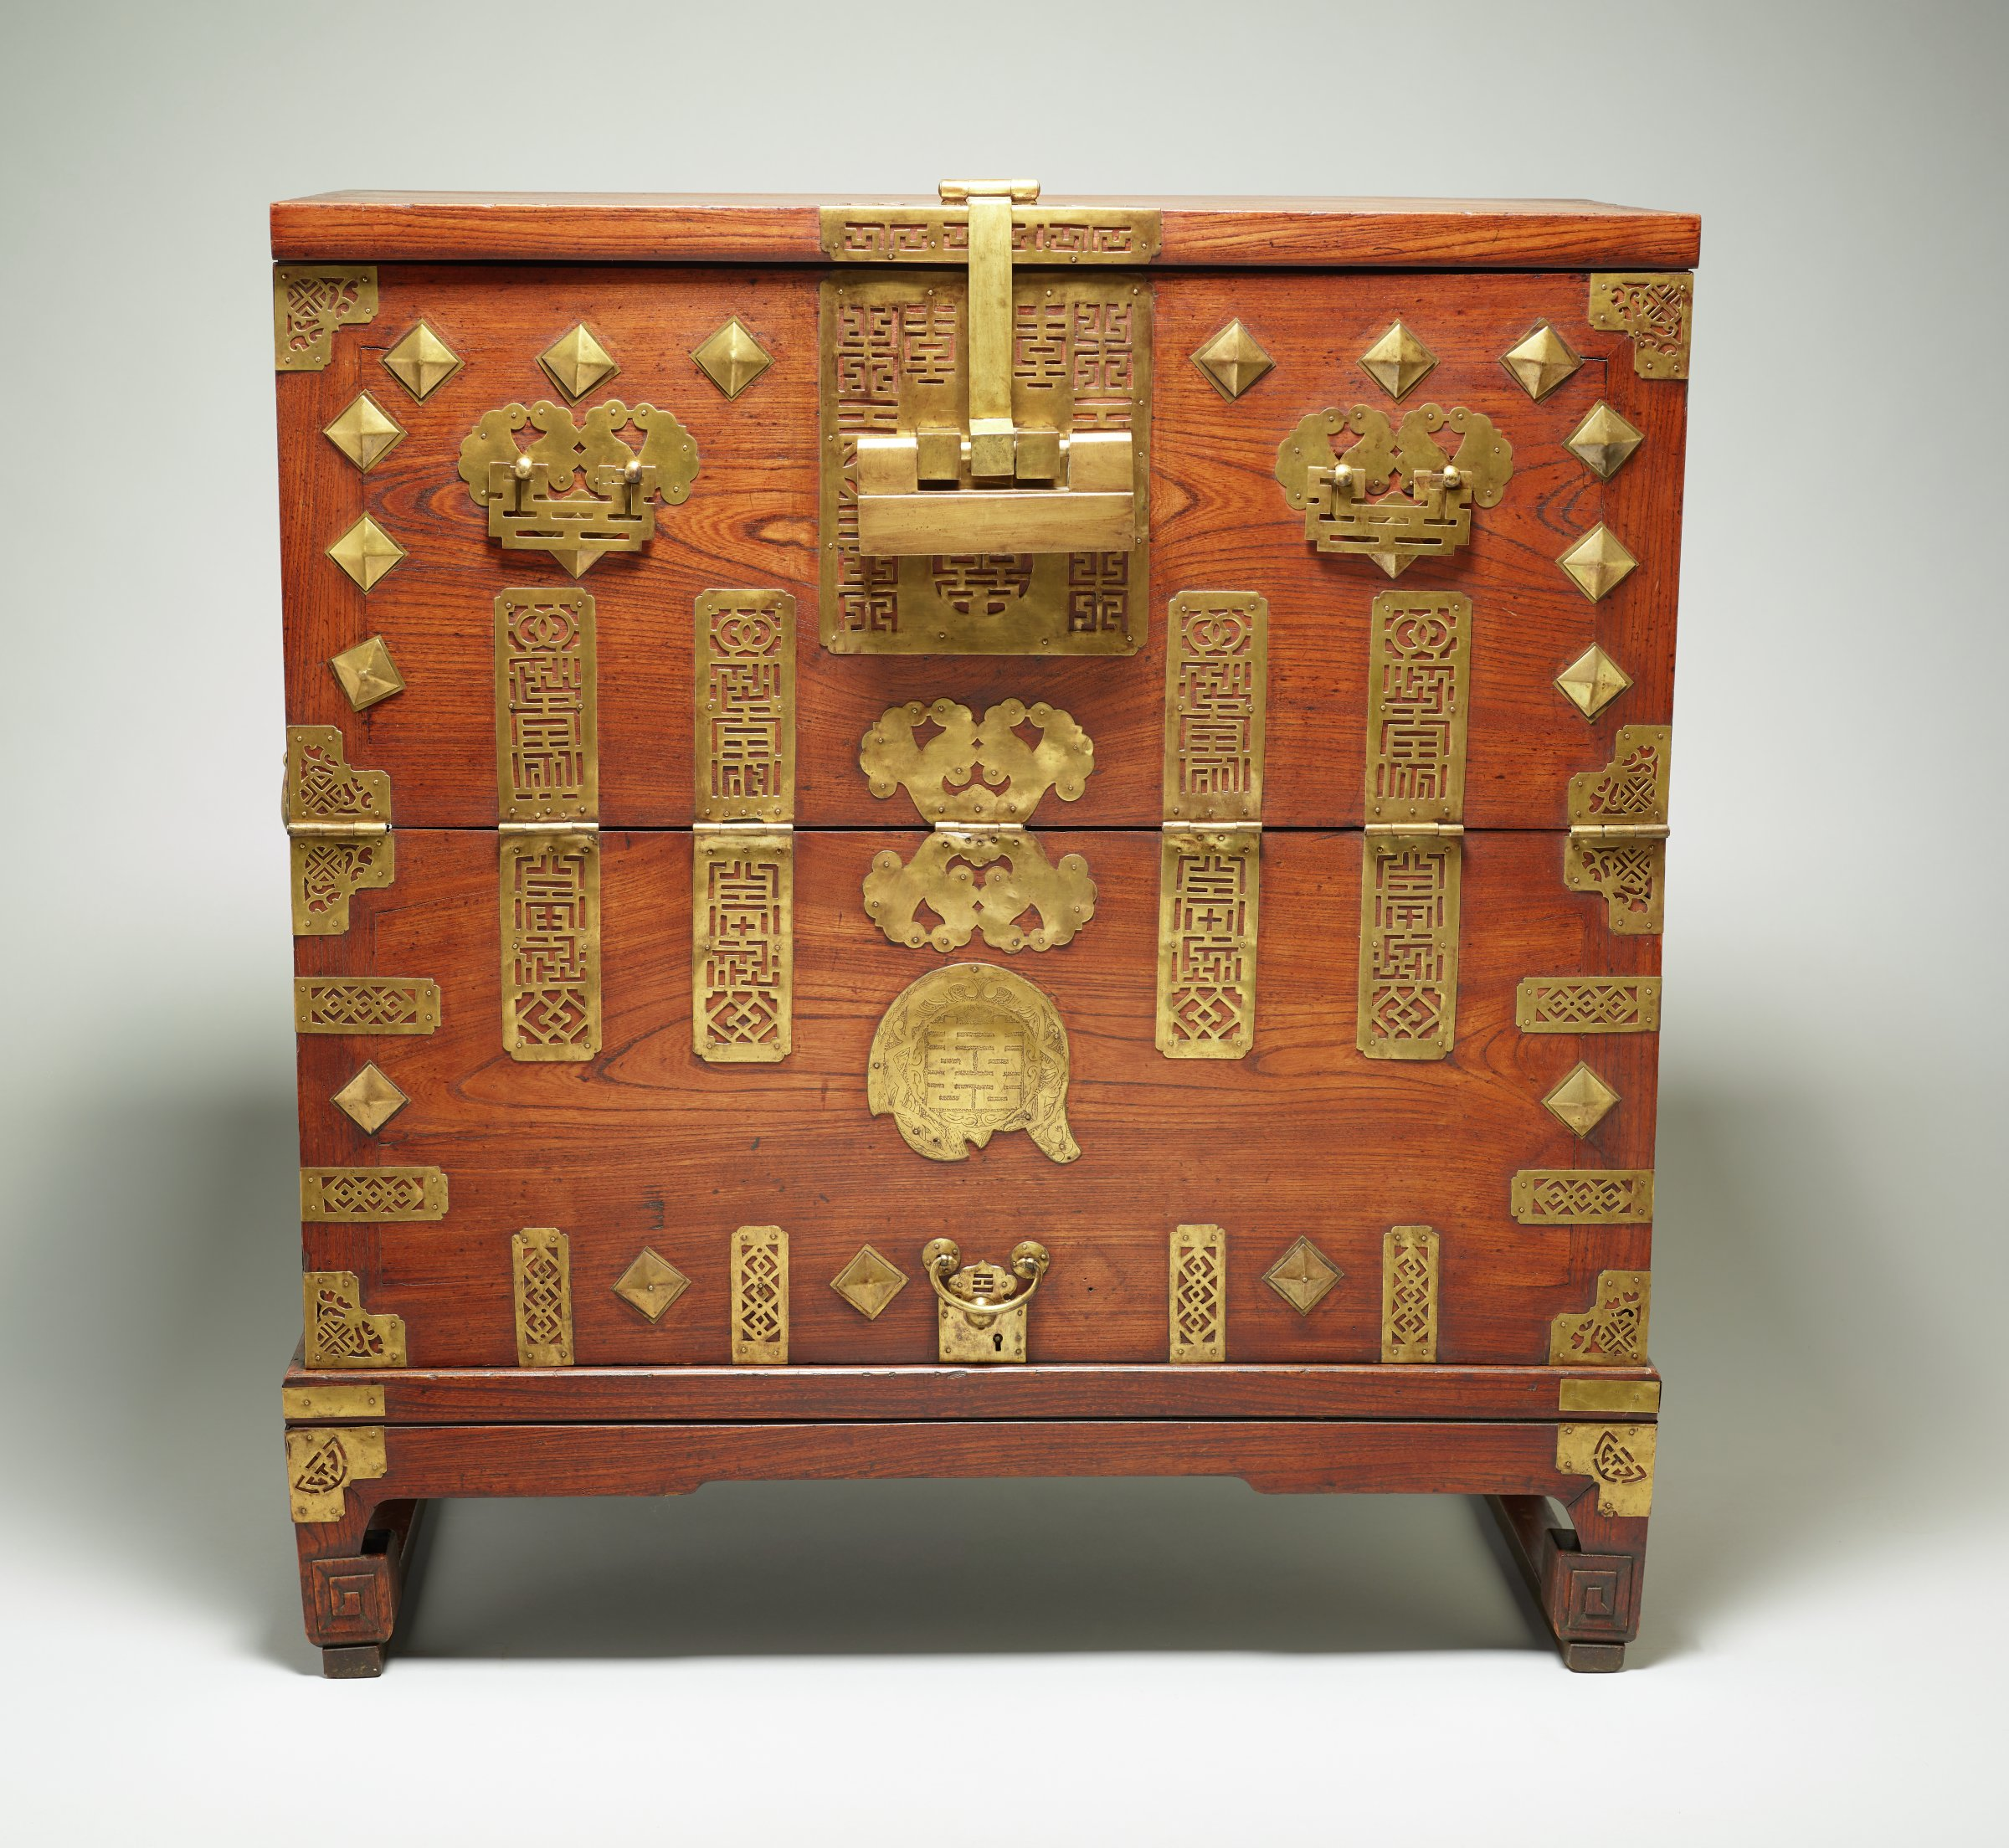 Chest (Bandaji) with Double Happiness, Butterfly and Fish Motifs, Korea, pinewood and brass